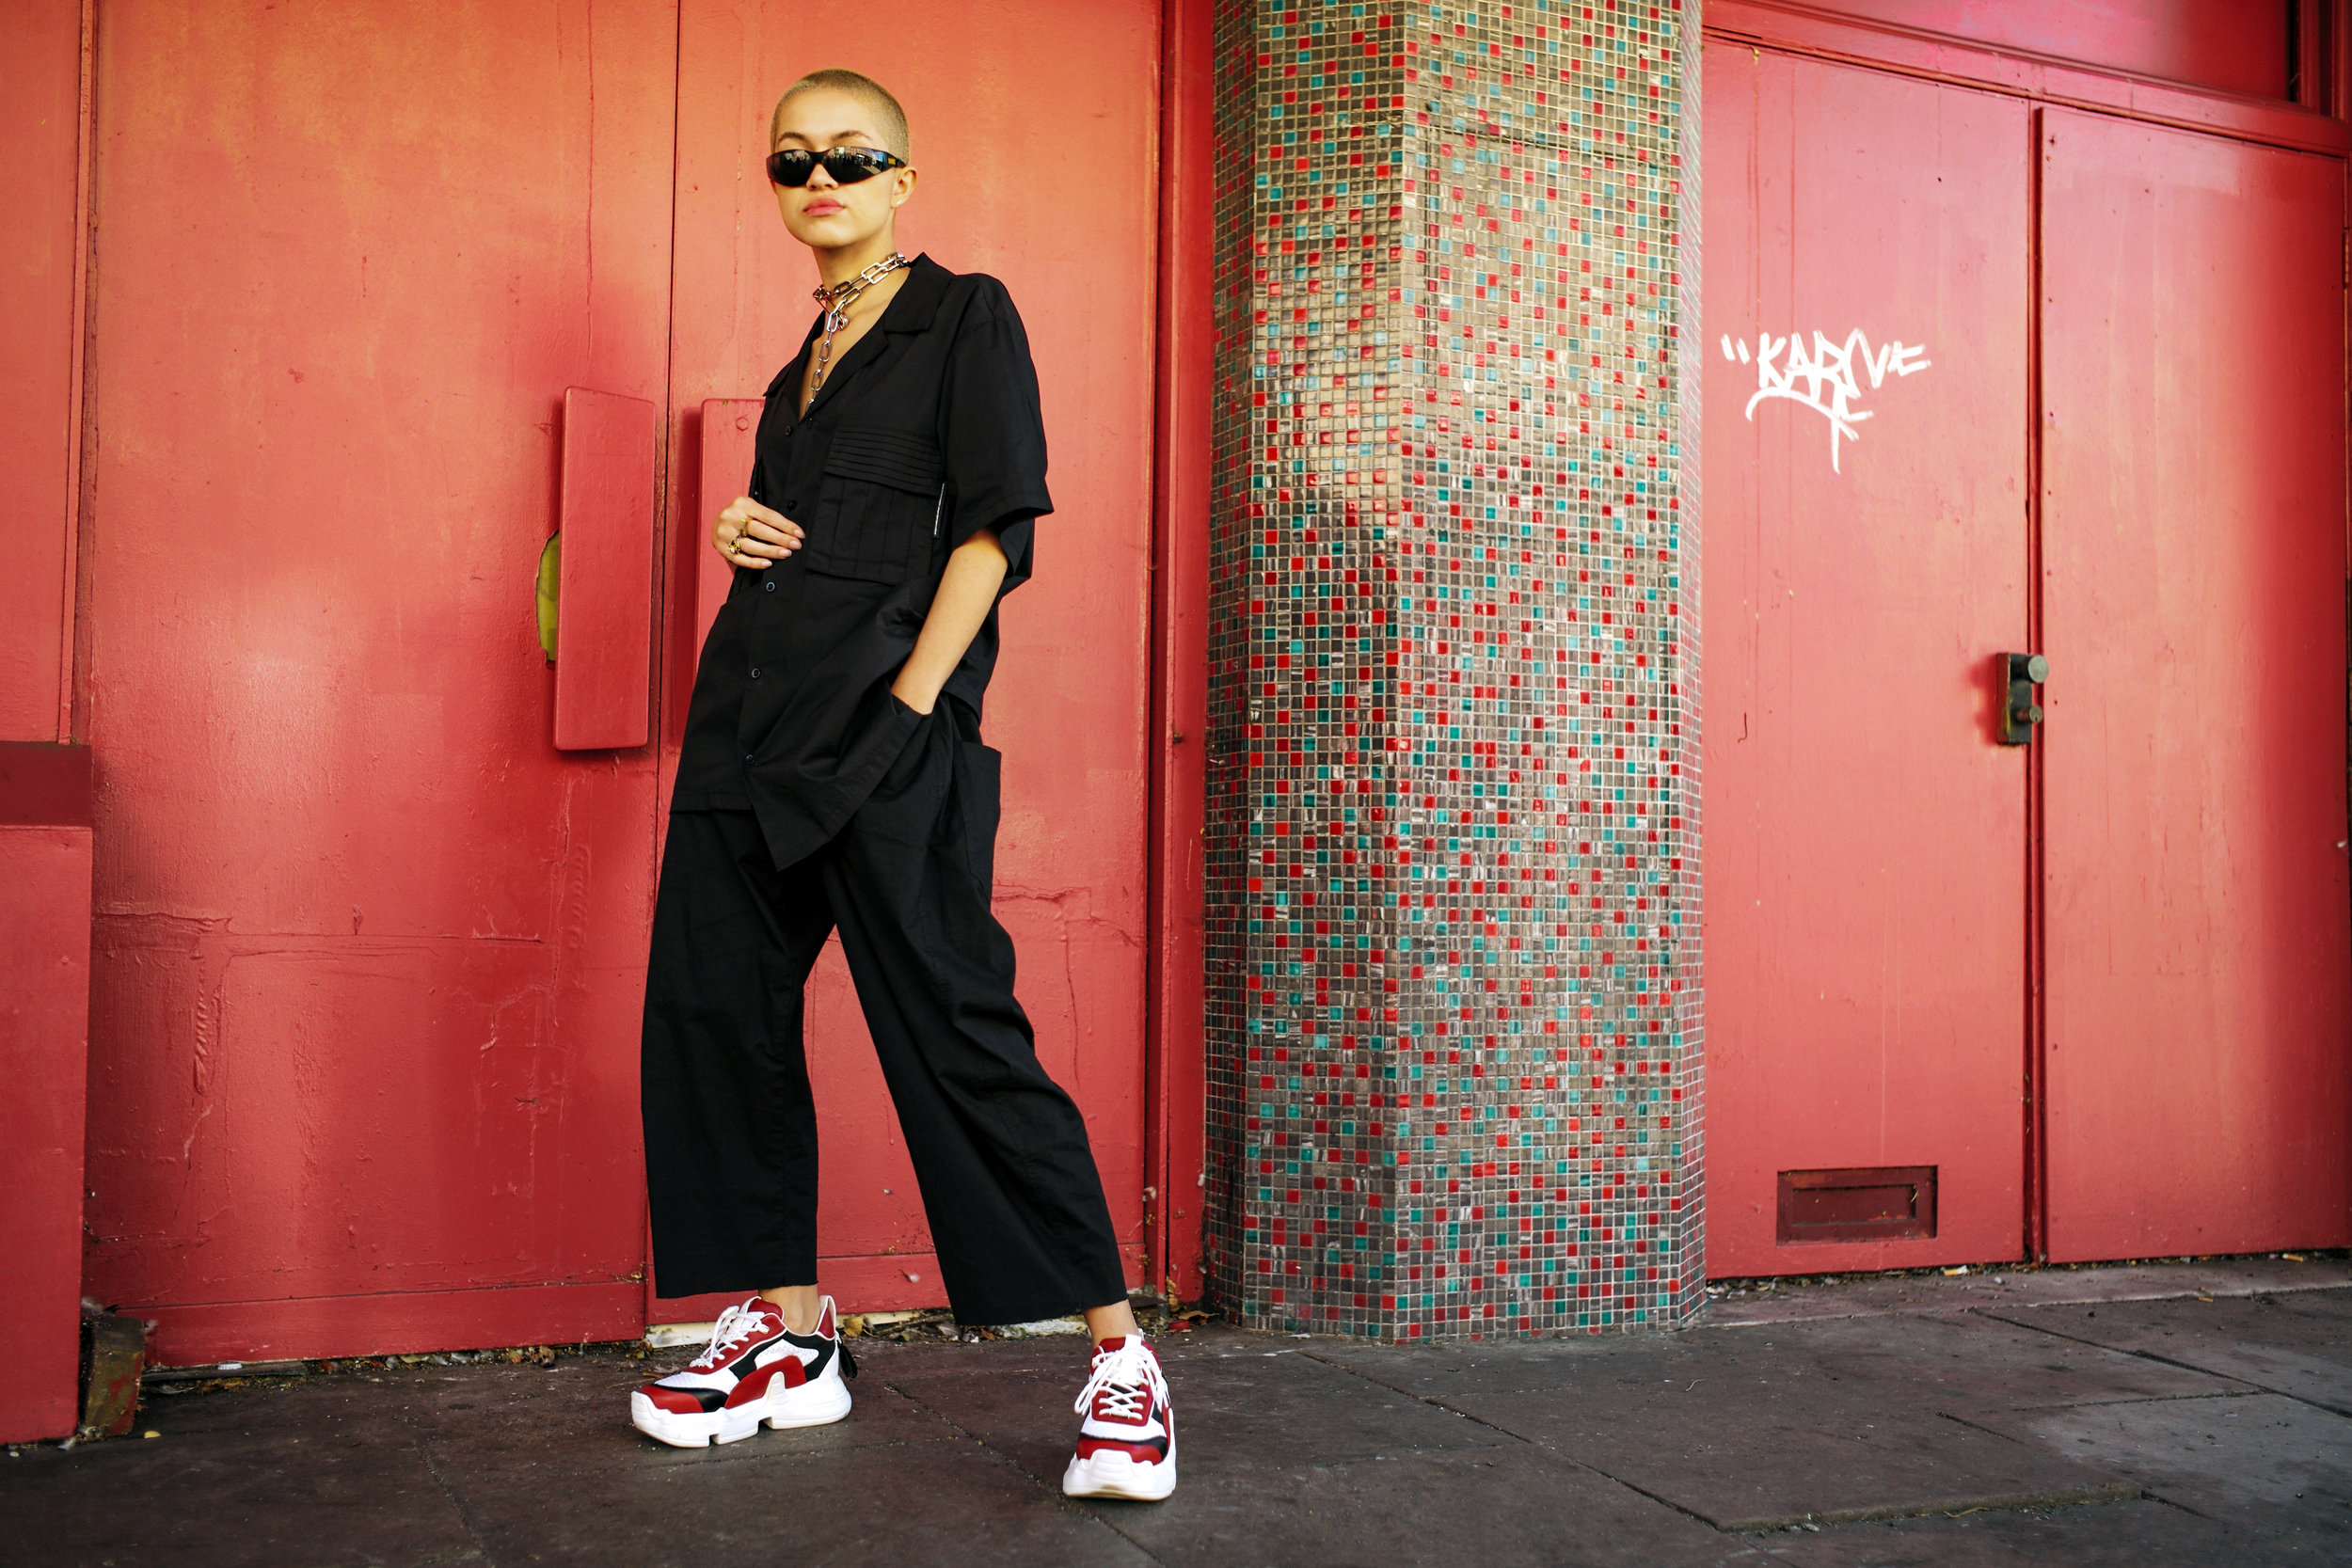 brief - Create a series of influencer-engaged content to launch the 'Nitro' shoe SWEAR's most customisable shoe to date